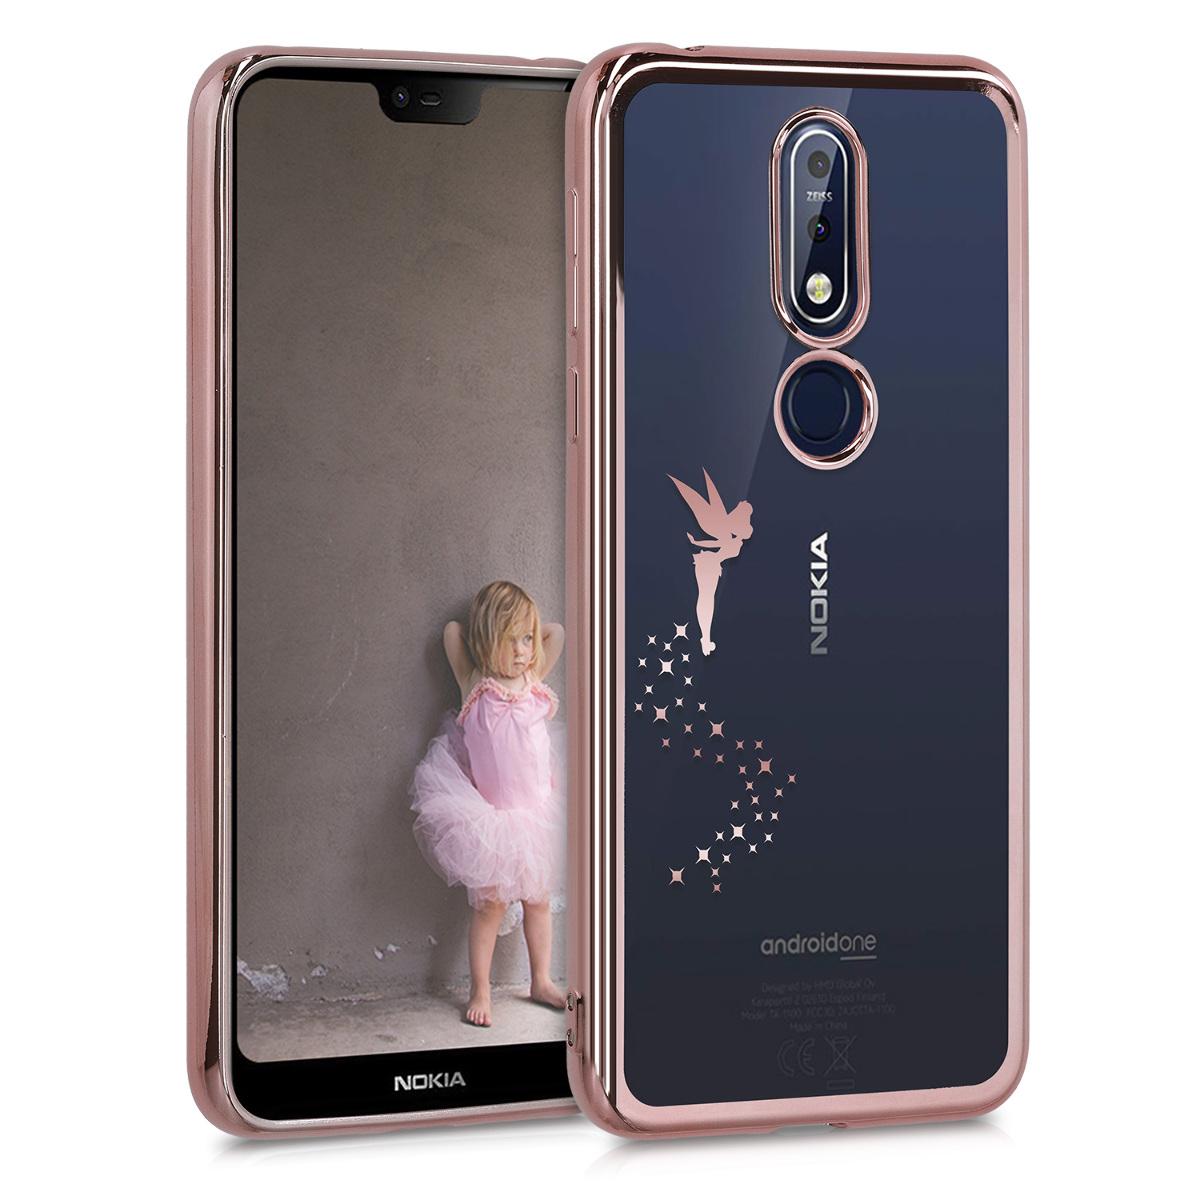 KW Θήκη Σιλικόνης Nokia 7.1 - Fairy Rose Gold / Transparent (49130.02)